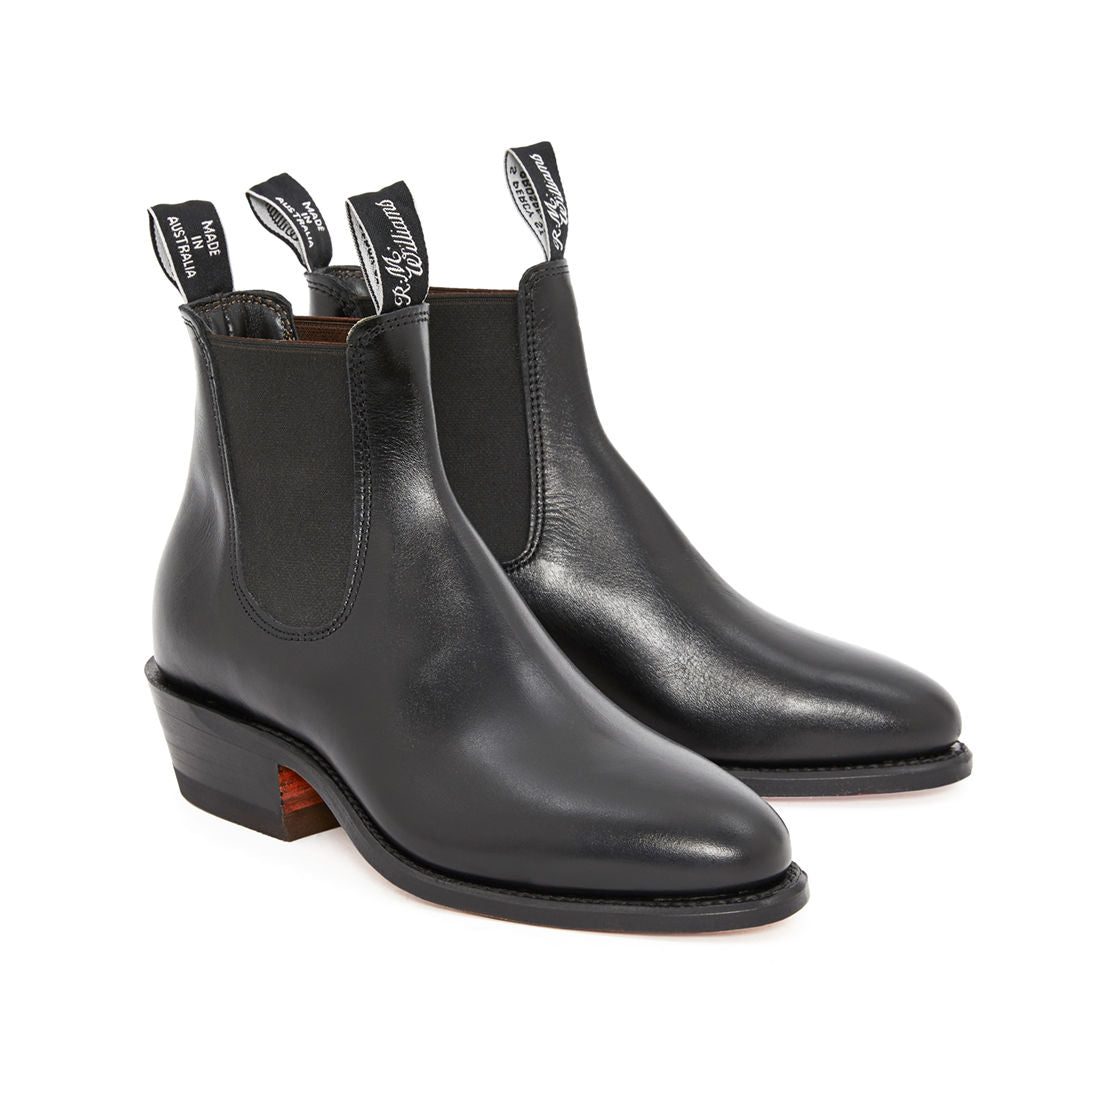 Lady Yearling Boots Black